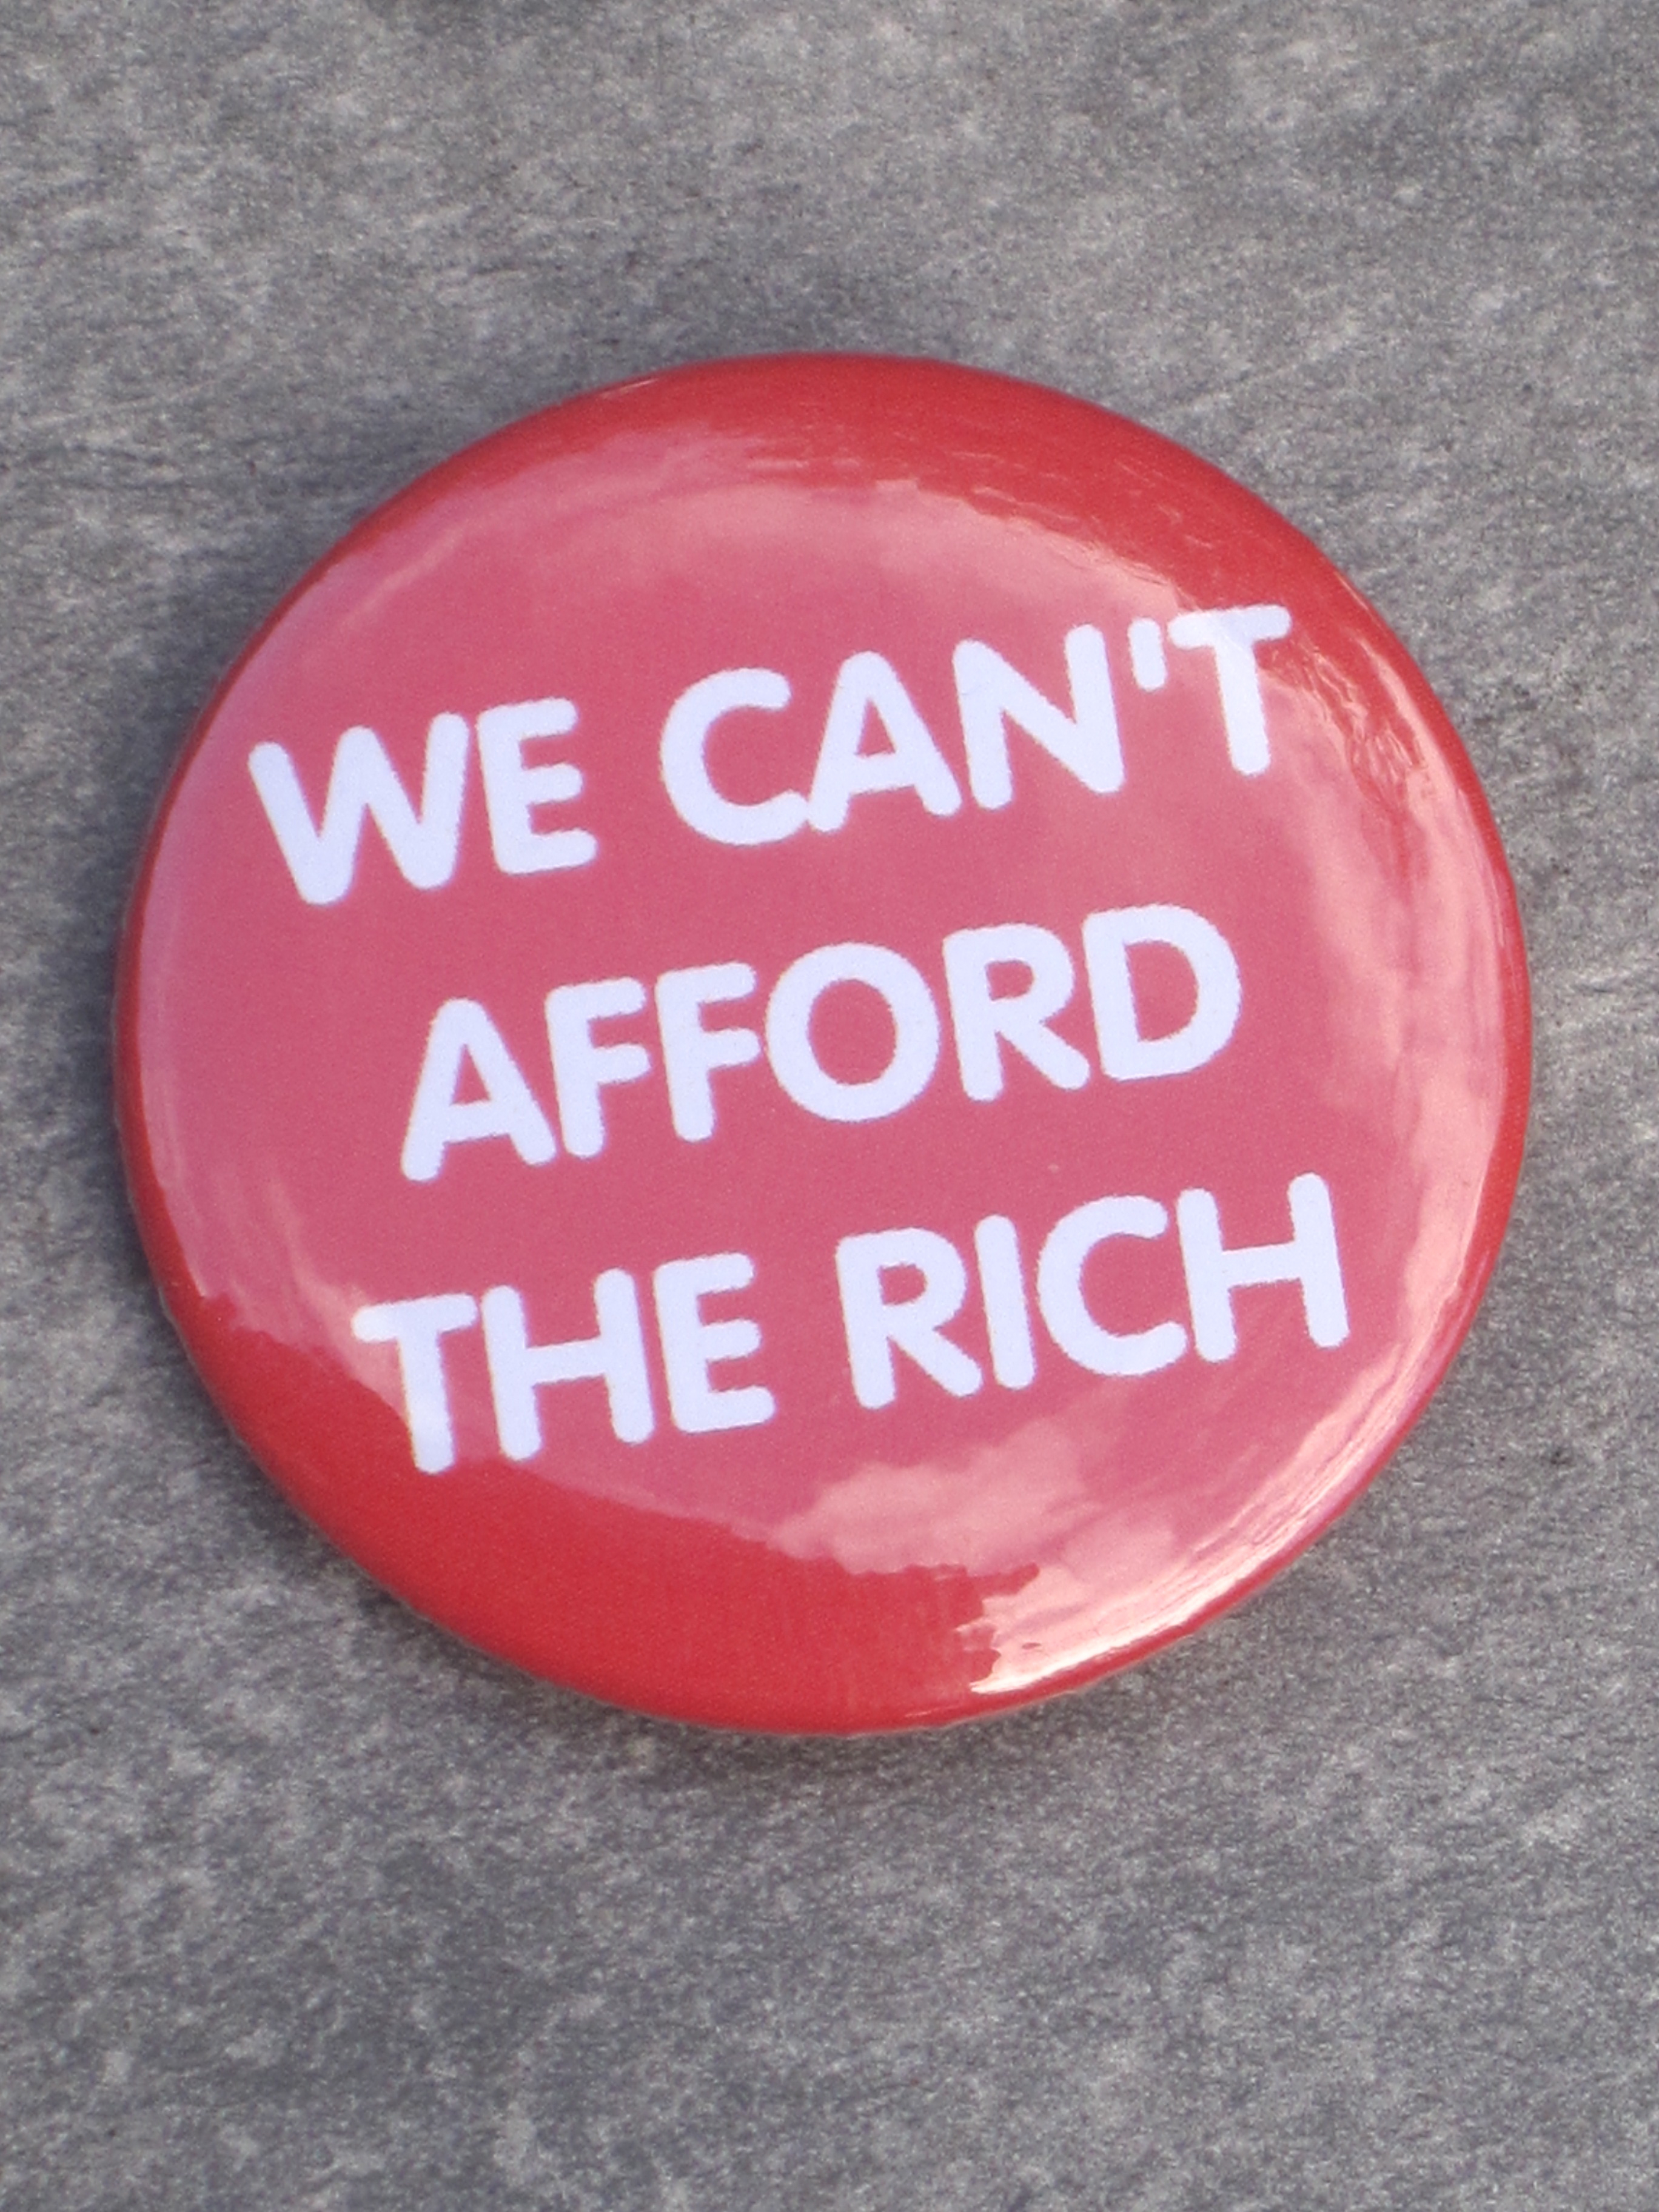 Why We Cant Afford the Rich